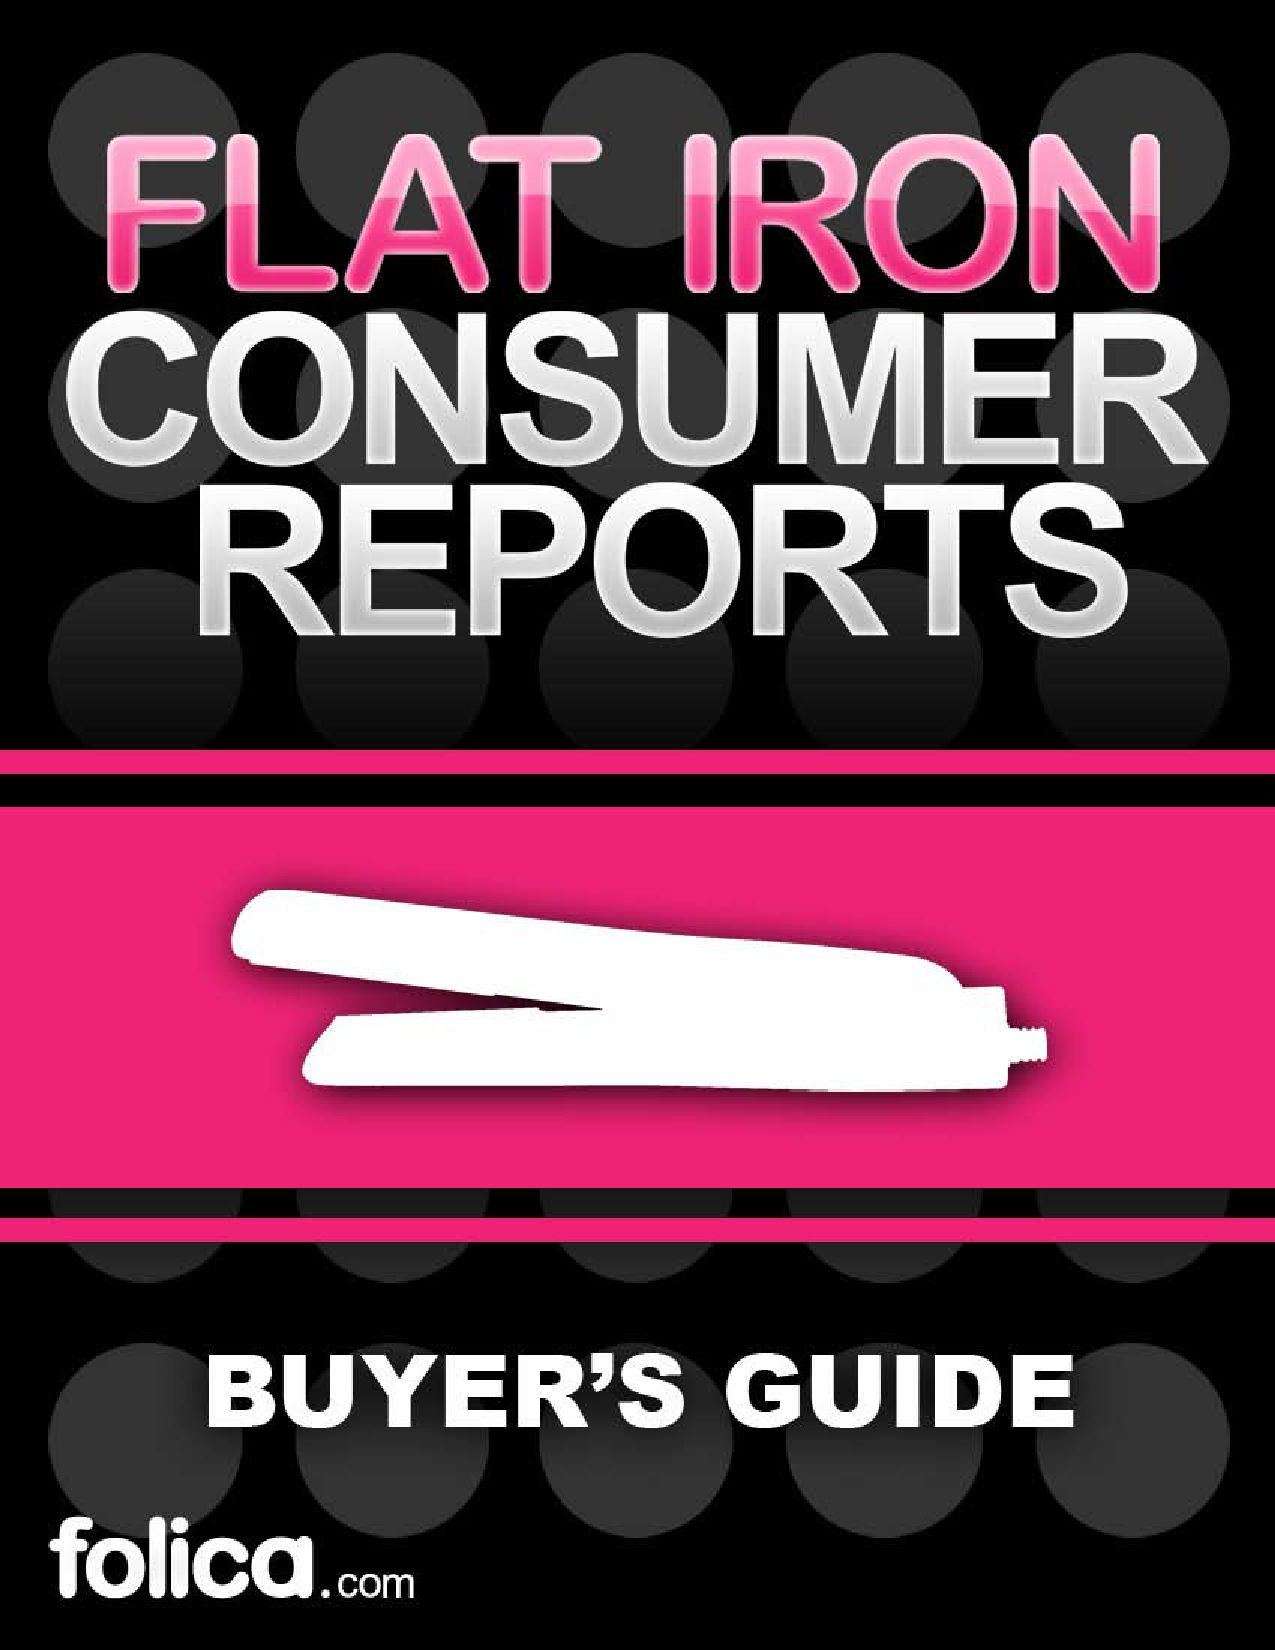 Consumer Reports Irons ~ Flat iron consumer report by martha alexander issuu